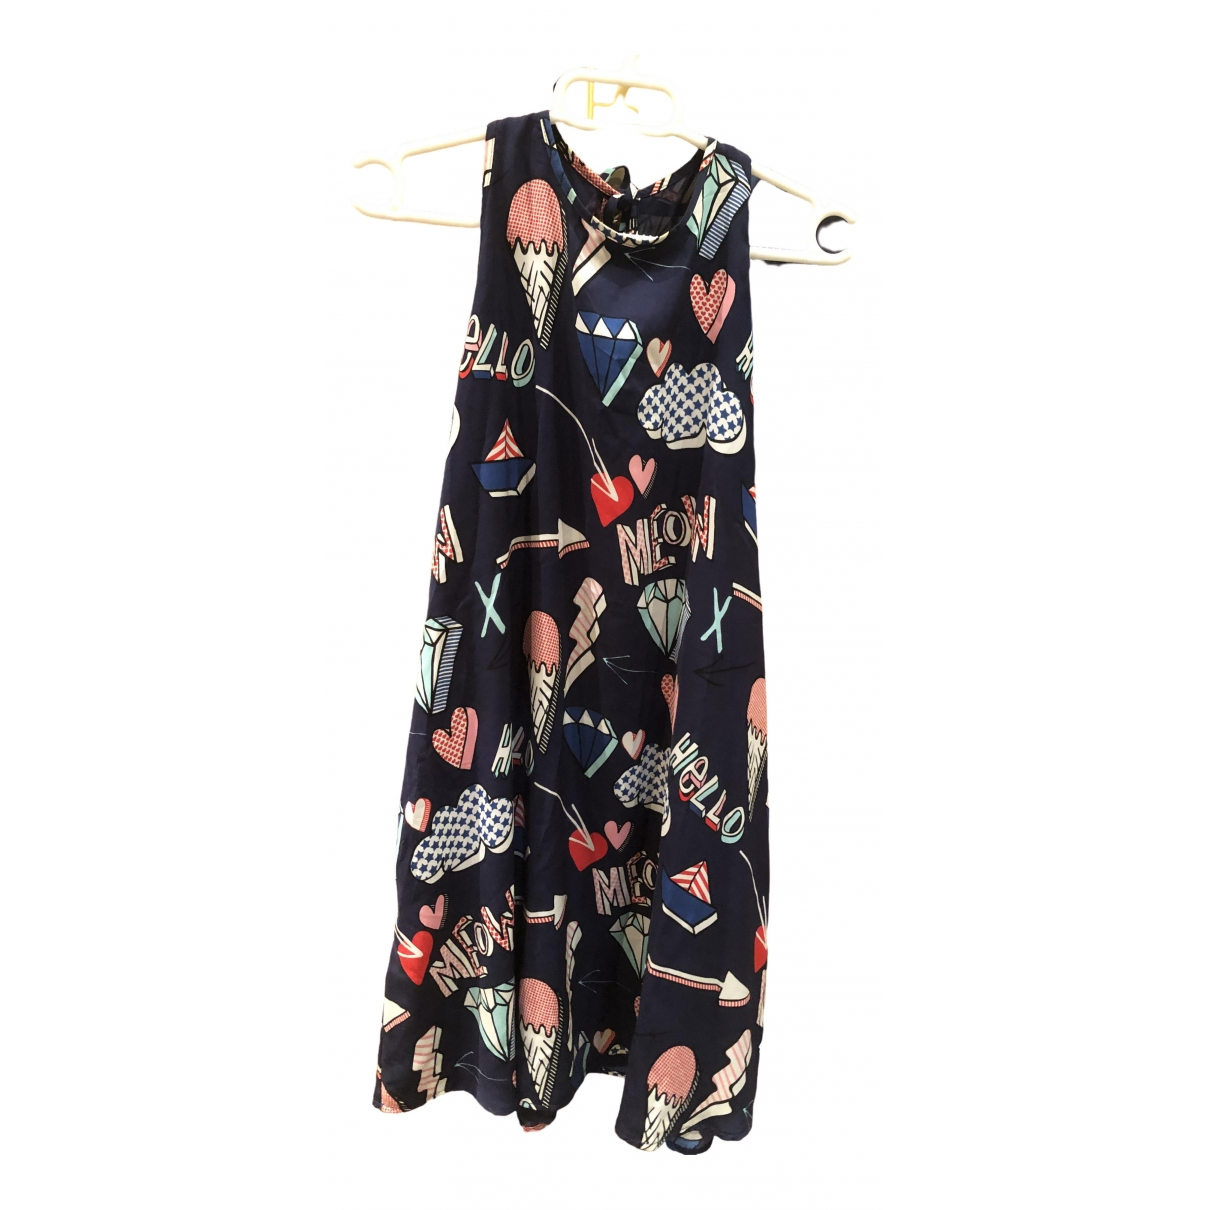 Zara \N Navy dress for Women XS International